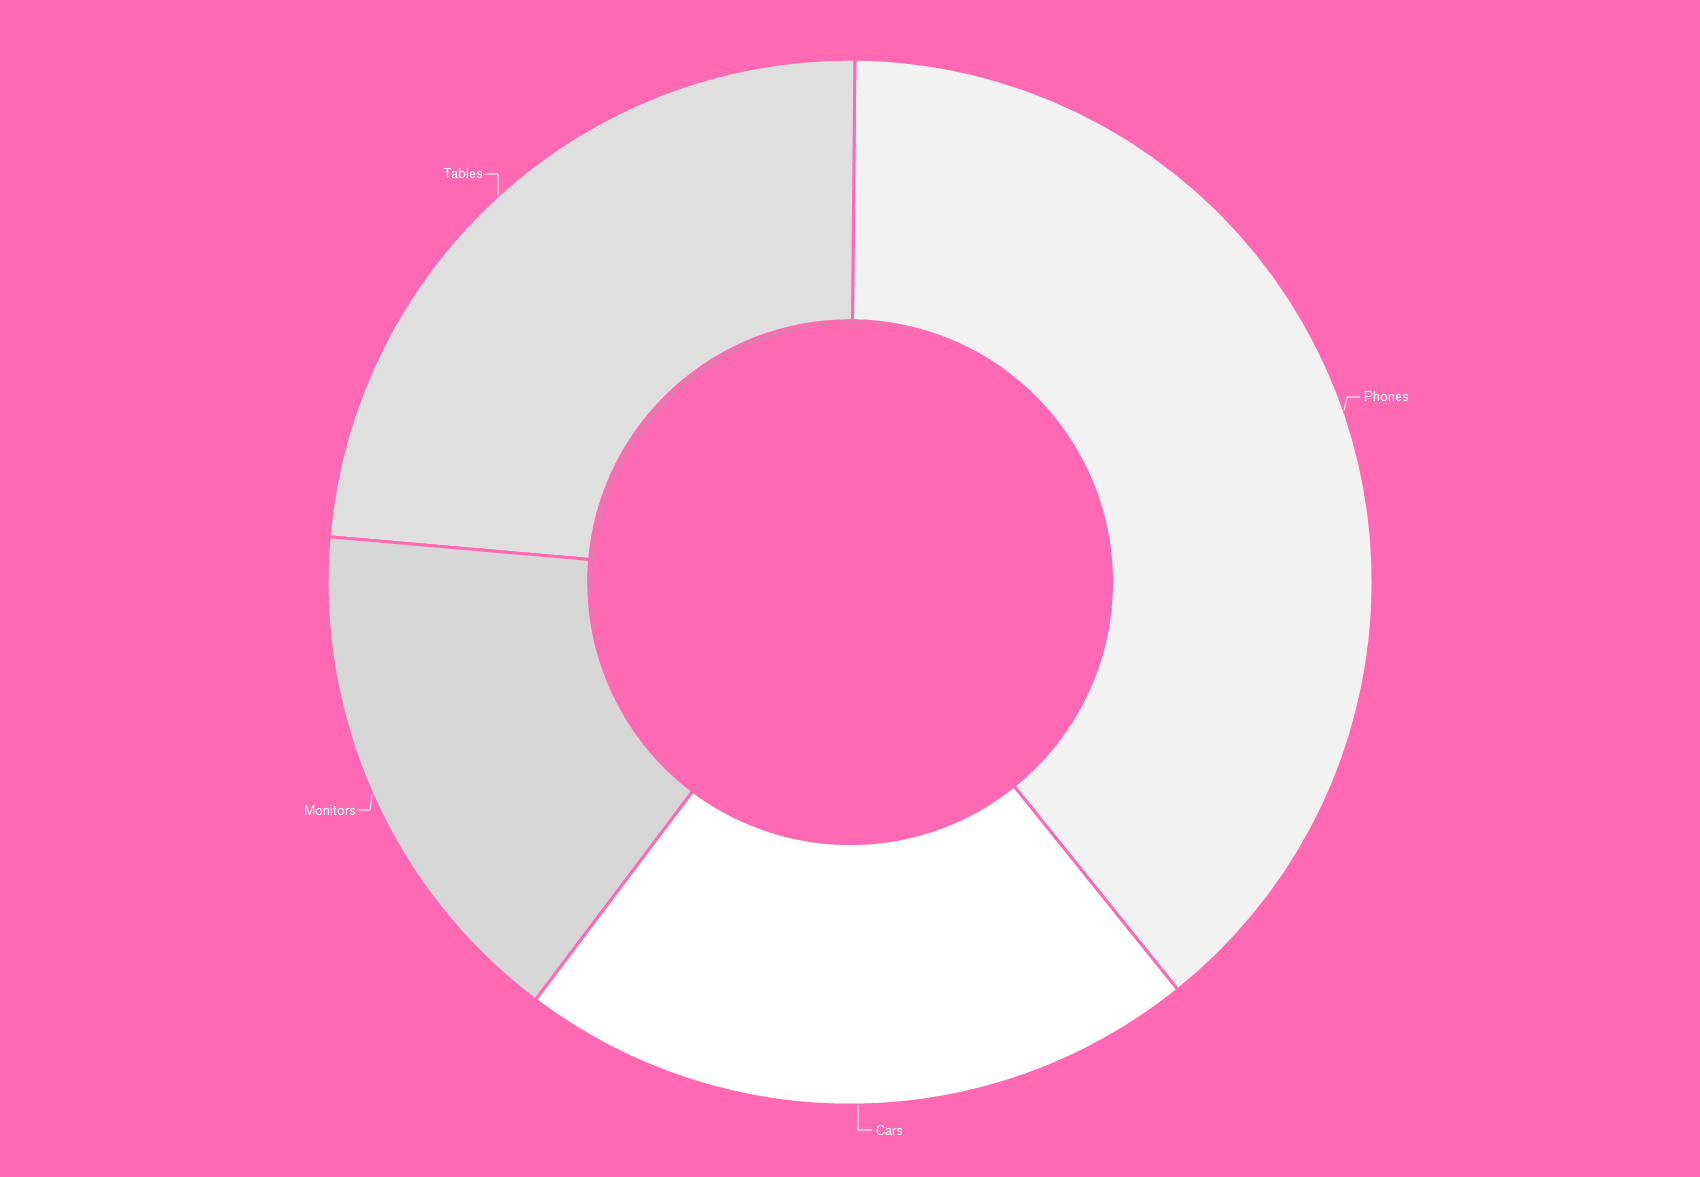 Basic 2D Donut Chart display.